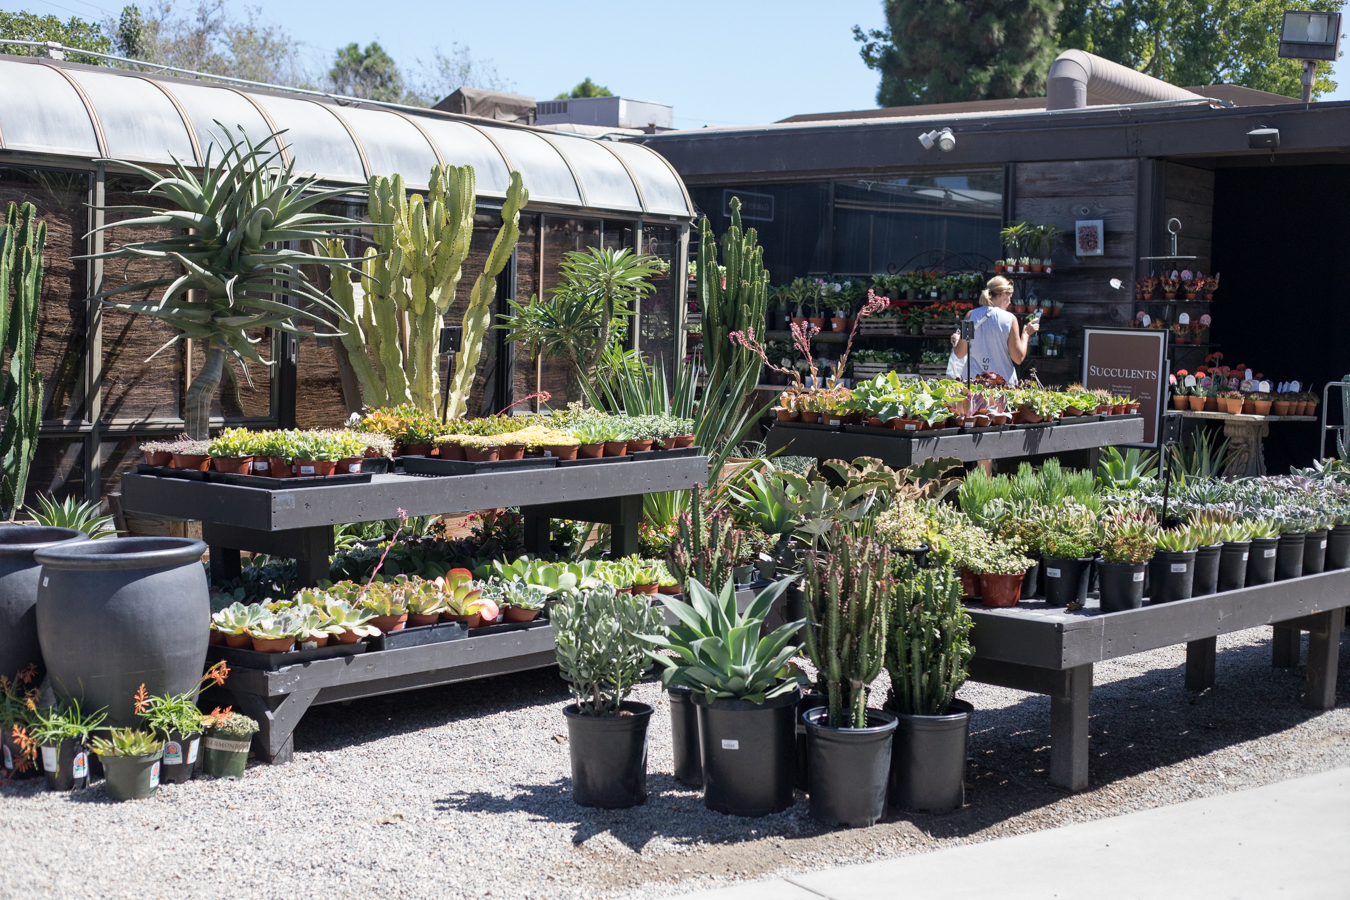 An image of the area outside of Garden Room 3 with succulents